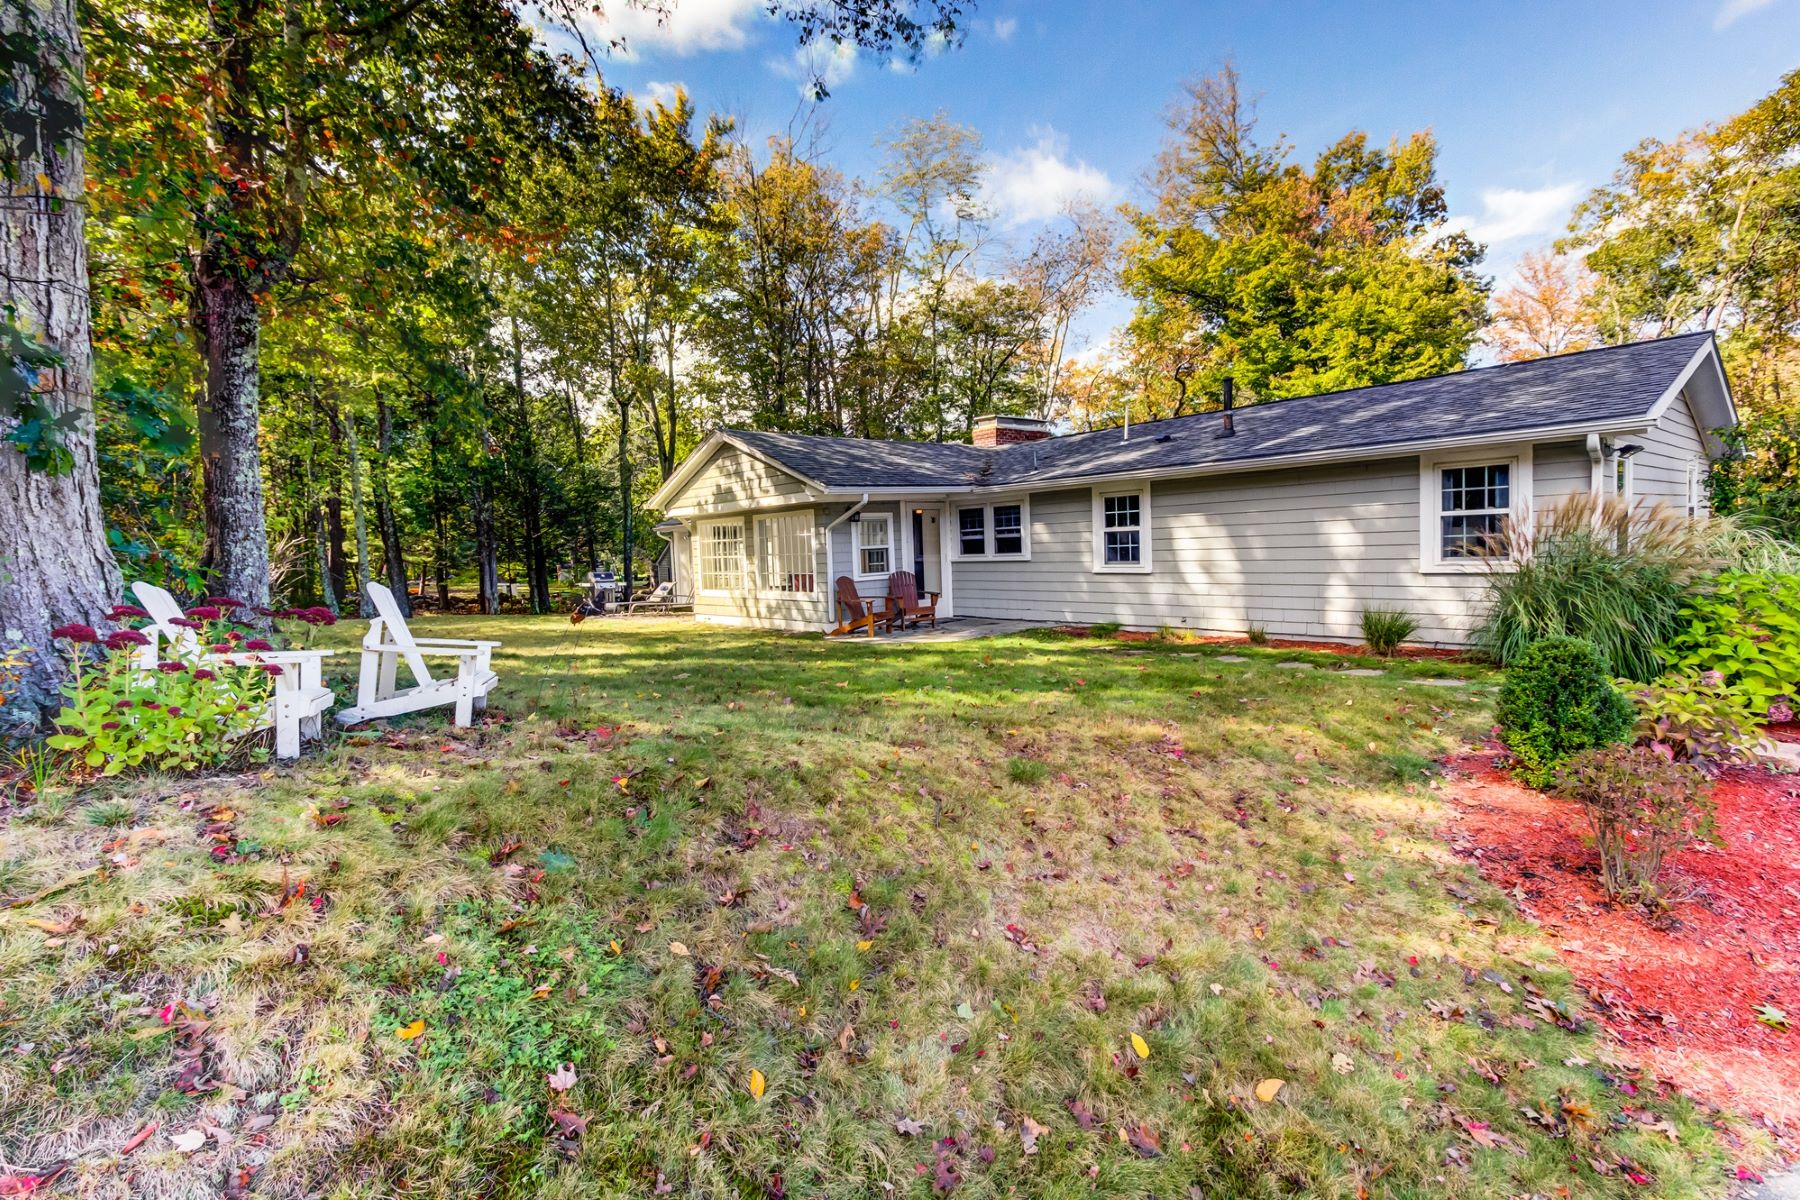 واحد منزل الأسرة للـ Sale في Fantastic Expanded Ranch 216 Oregon Road Ashland, Massachusetts 01721 United States